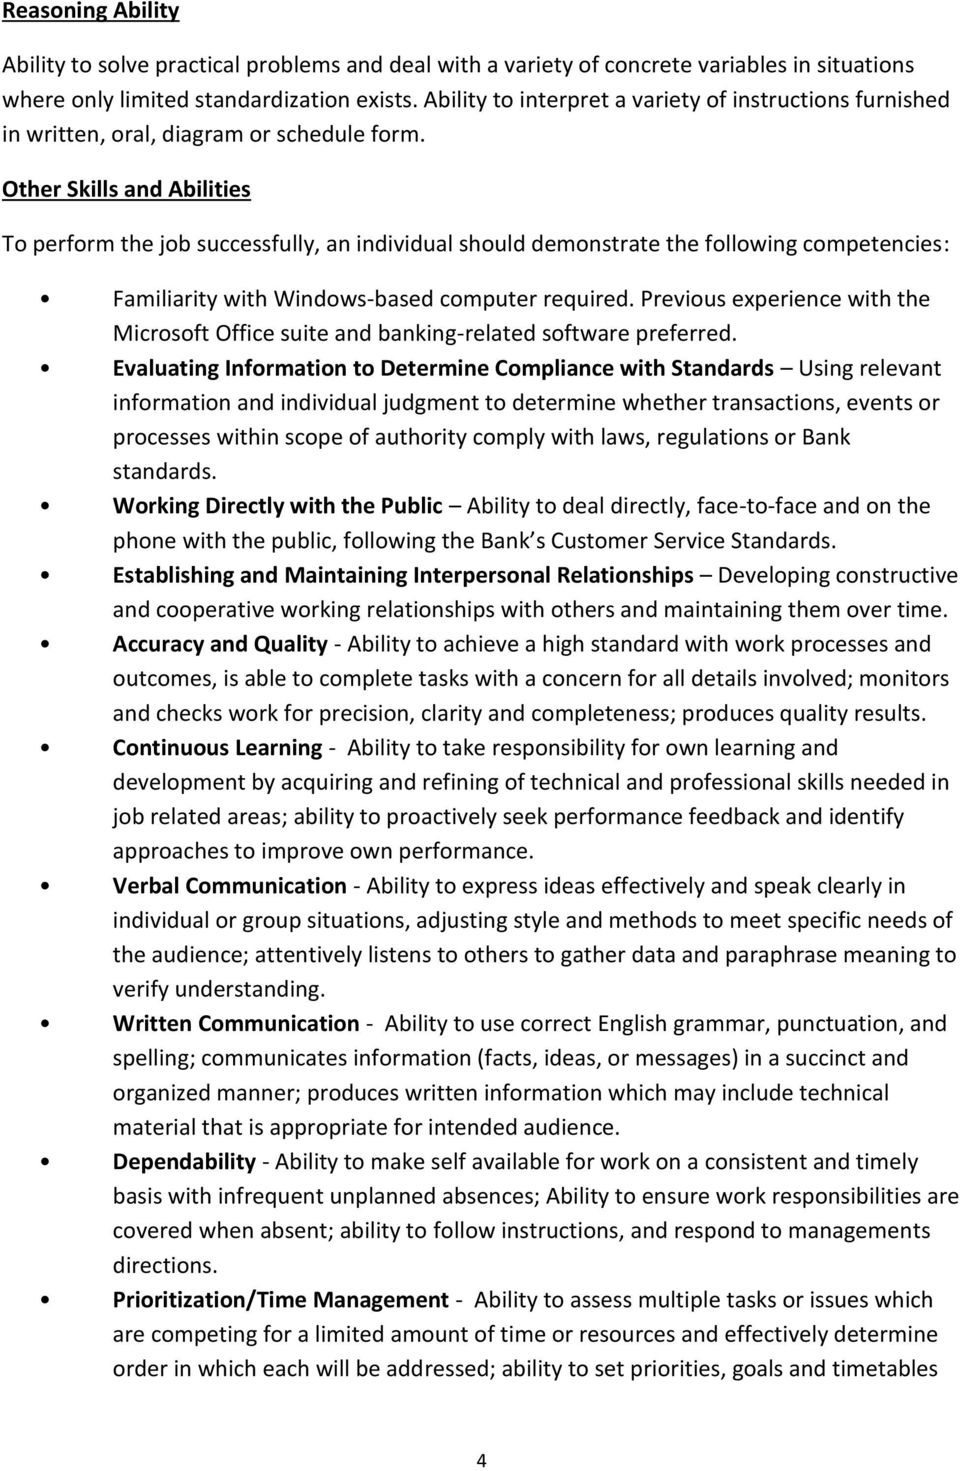 Other Skills and Abilities To perform the job successfully, an individual should demonstrate the following competencies: Familiarity with Windows-based computer required.